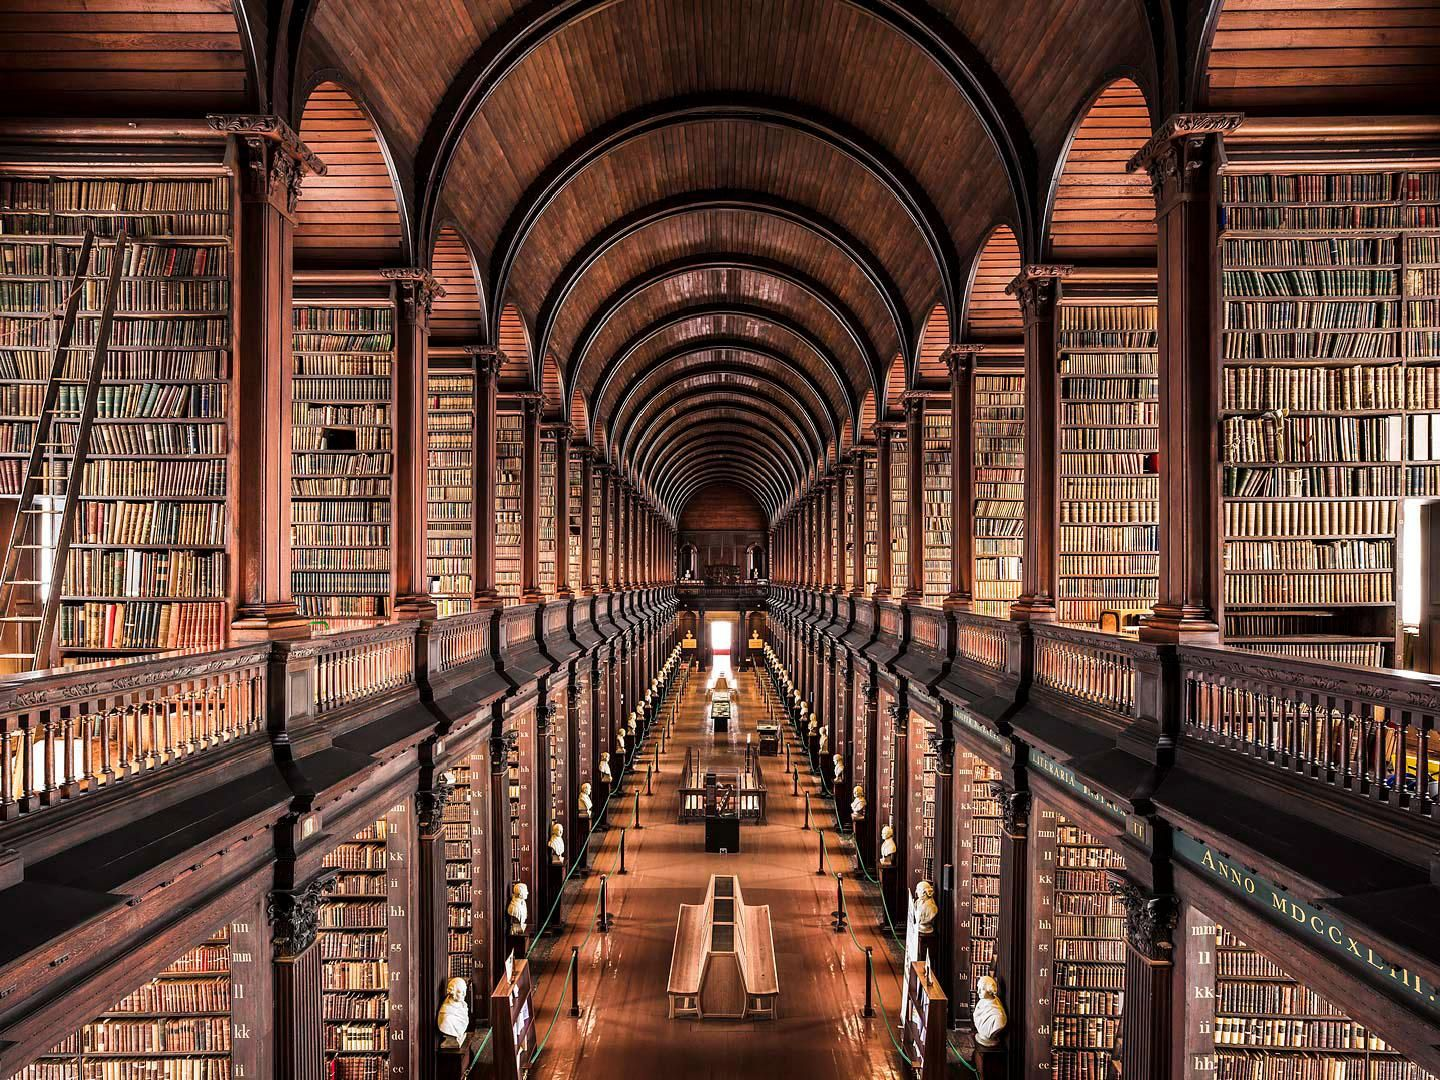 Trinity College Old Library (Dublin, Ireland)